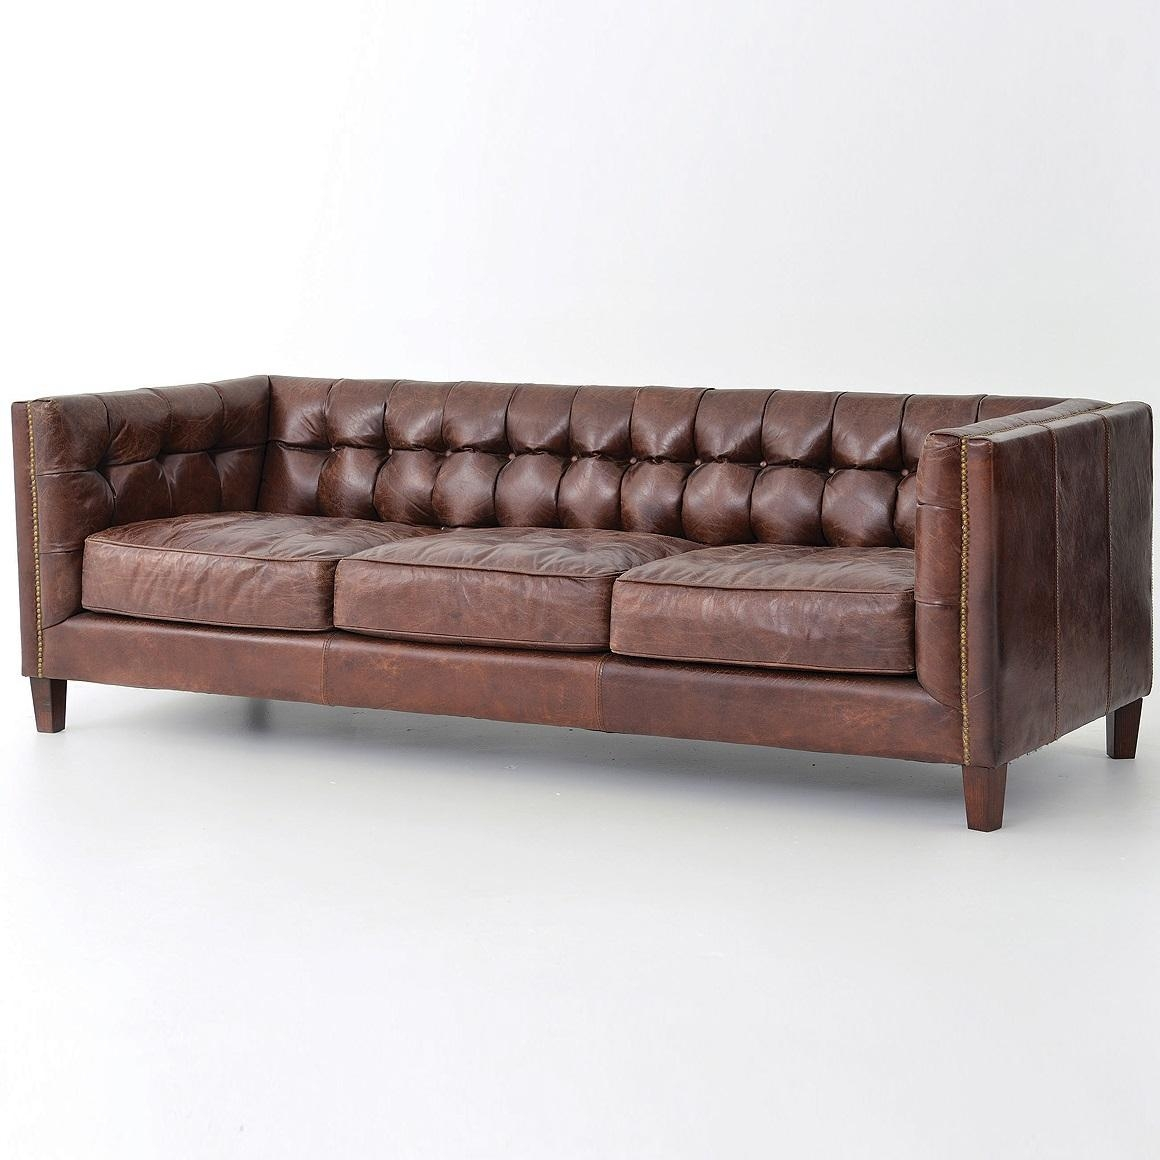 Sofas Center : Archaicawful Leather Tufted Sofa Photos Design Throughout Brown Leather Tufted Sofas (Image 17 of 20)